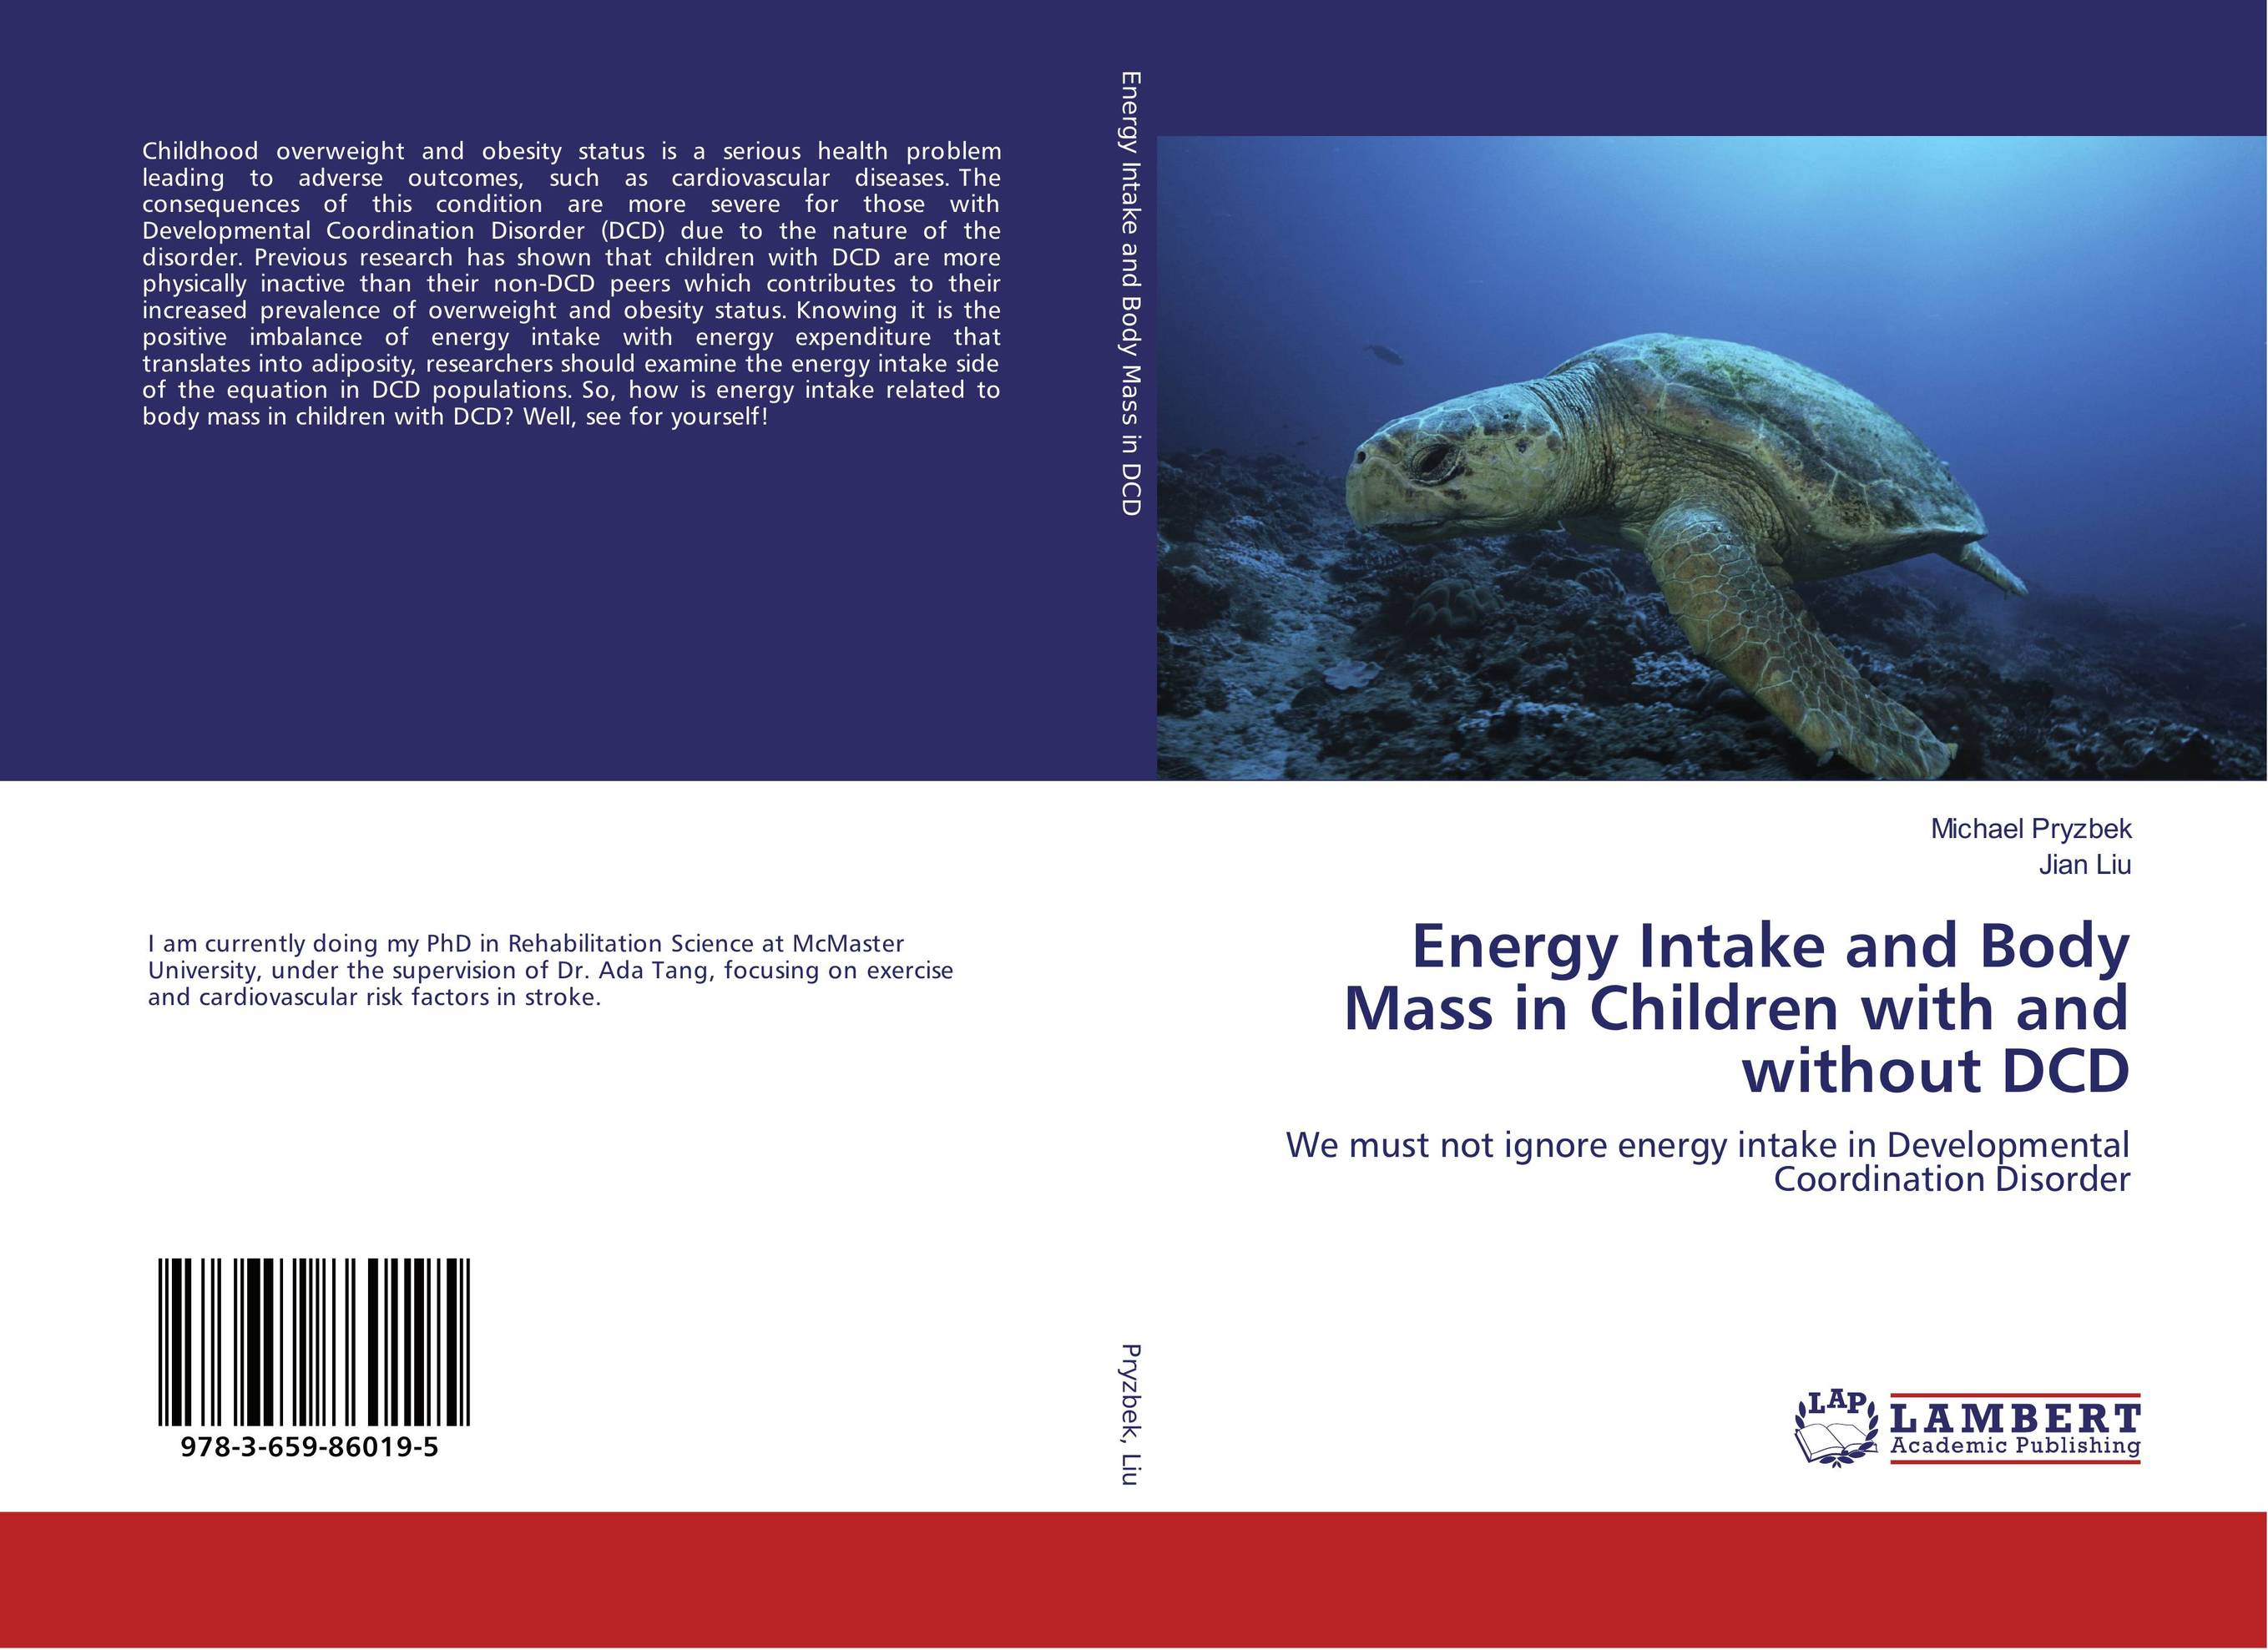 Energy Intake and Body Mass in Children with and without DCD effective interventions for managing overweight and obesity in adults